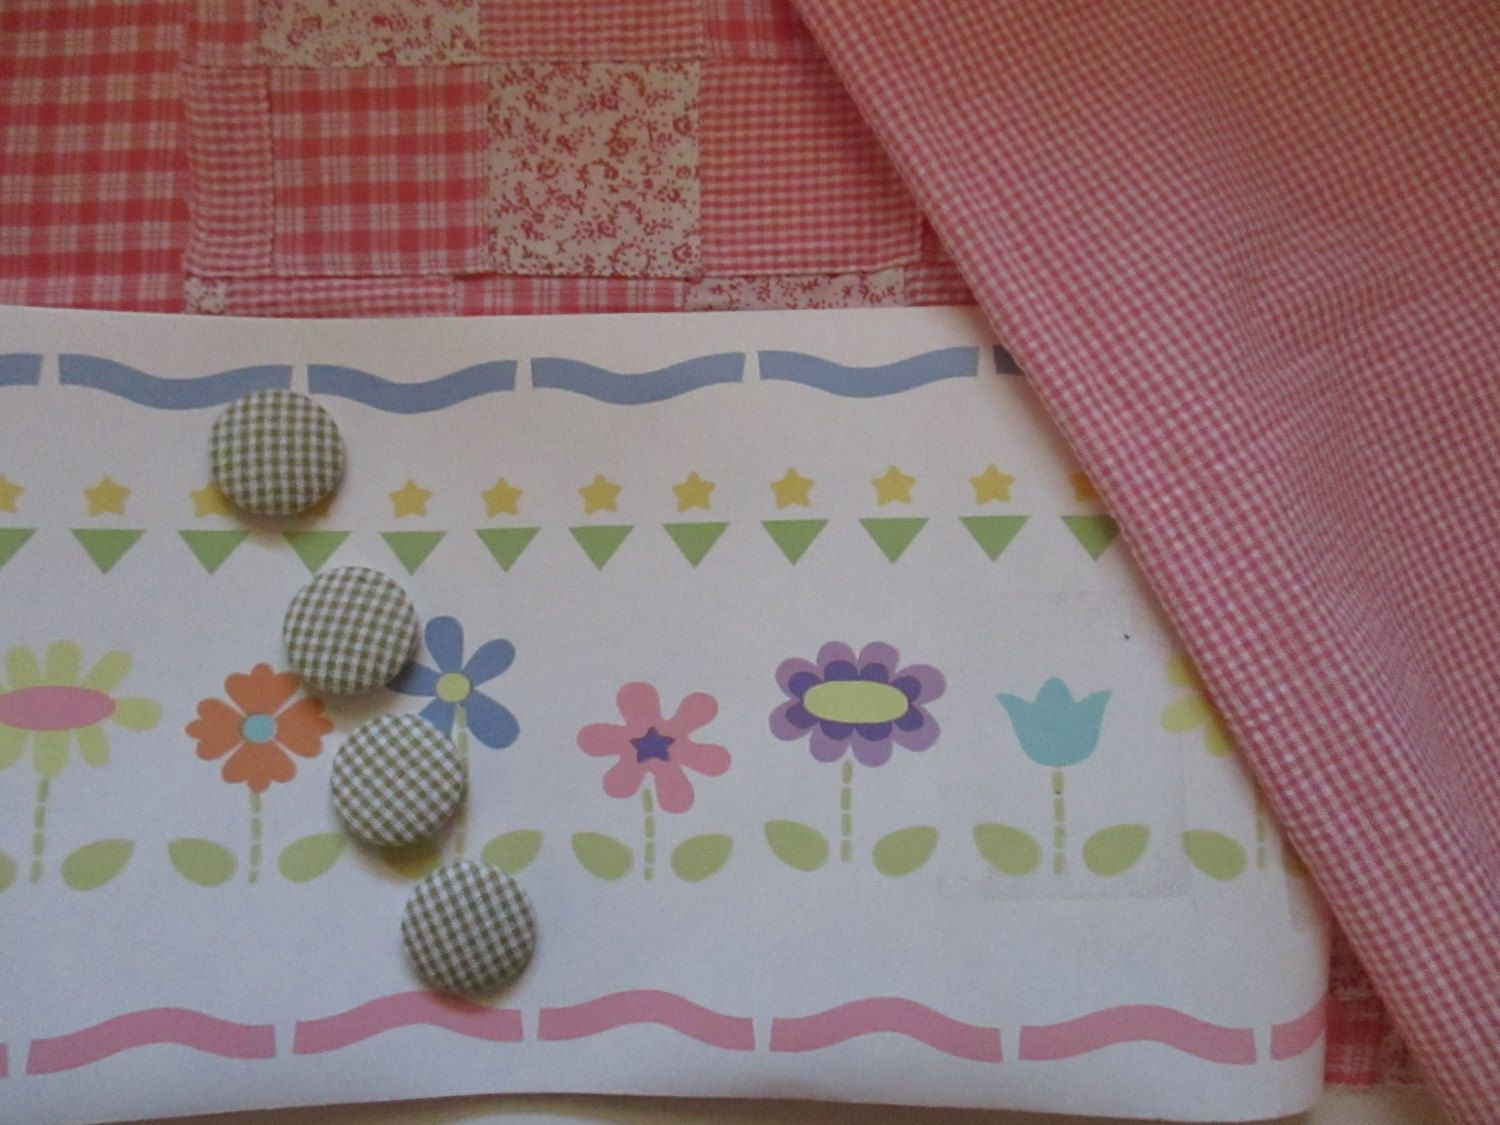 Pin on Crafting Fabrics Painting Supplies Sewing